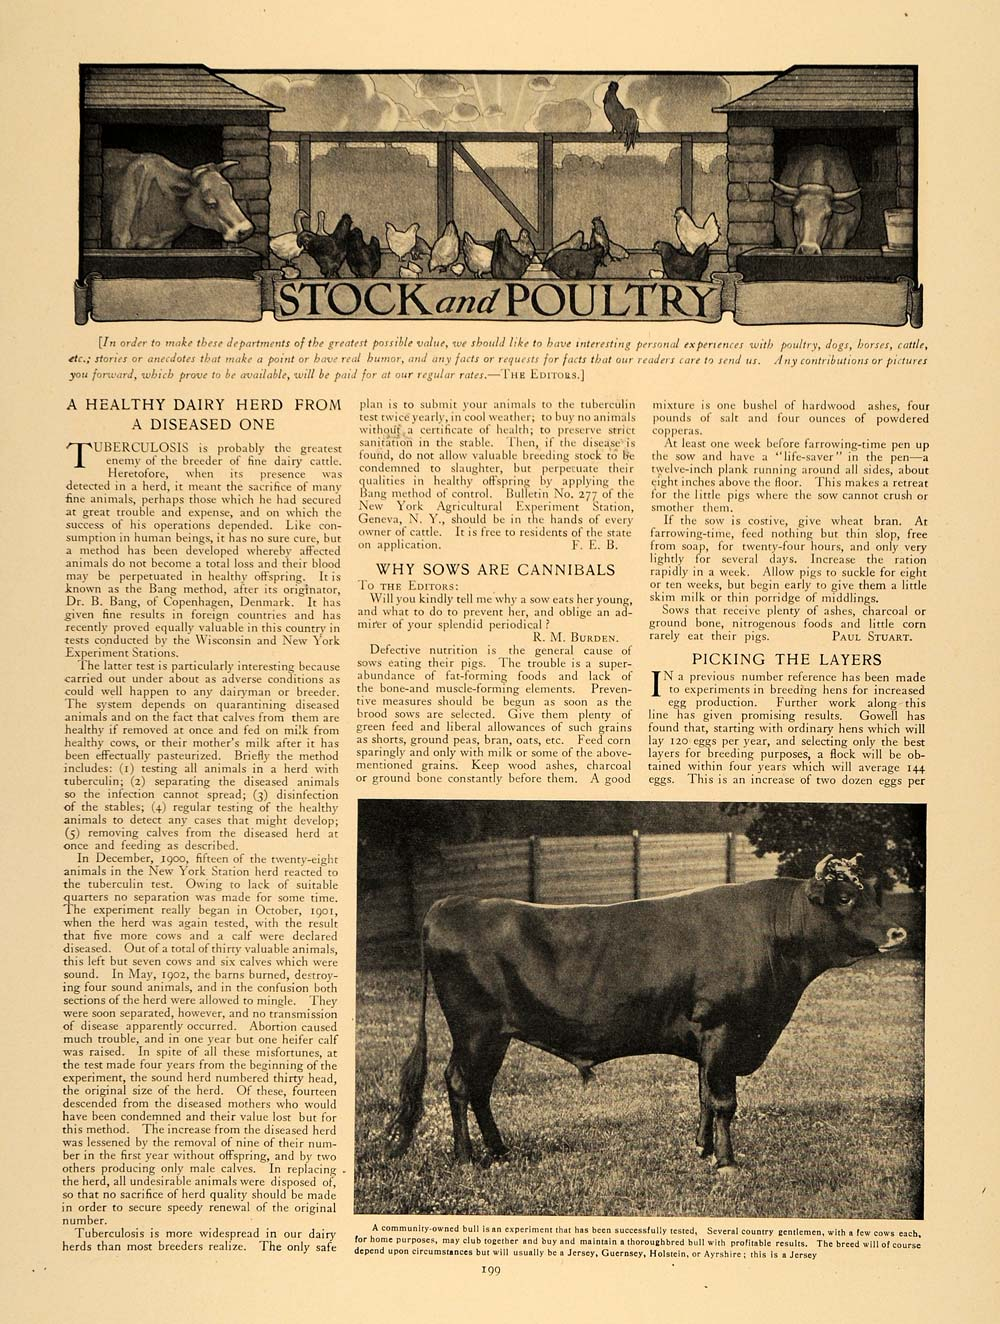 1907 Article Cattle Disease Sow Cannibals R. M. Burden - ORIGINAL CL9